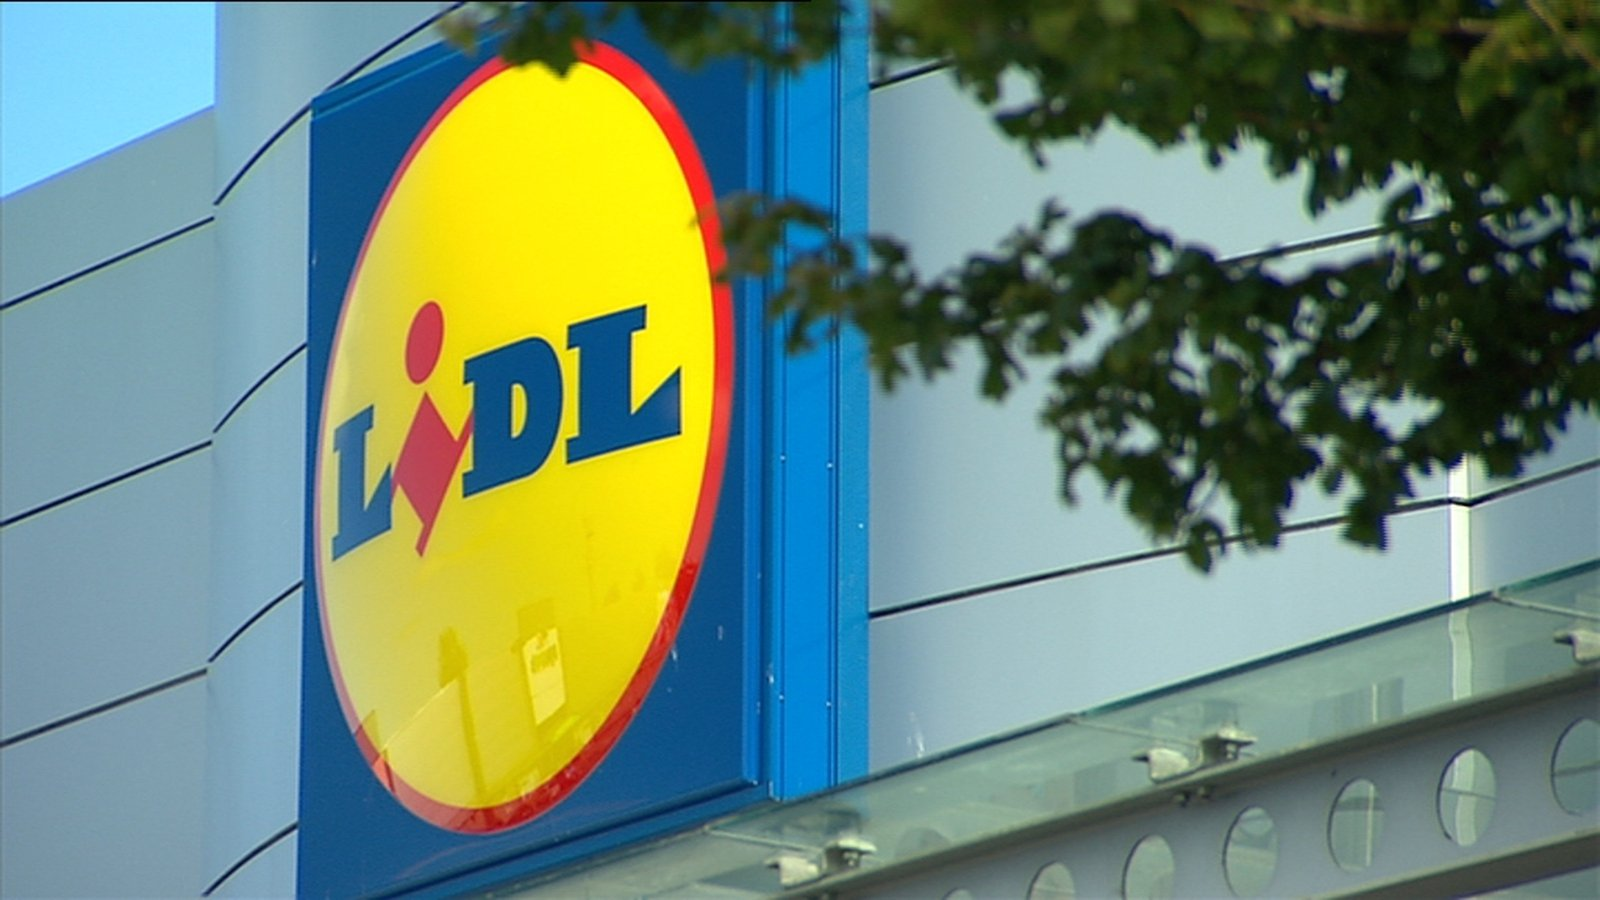 Lidl to create 1,200 new jobs over the next year